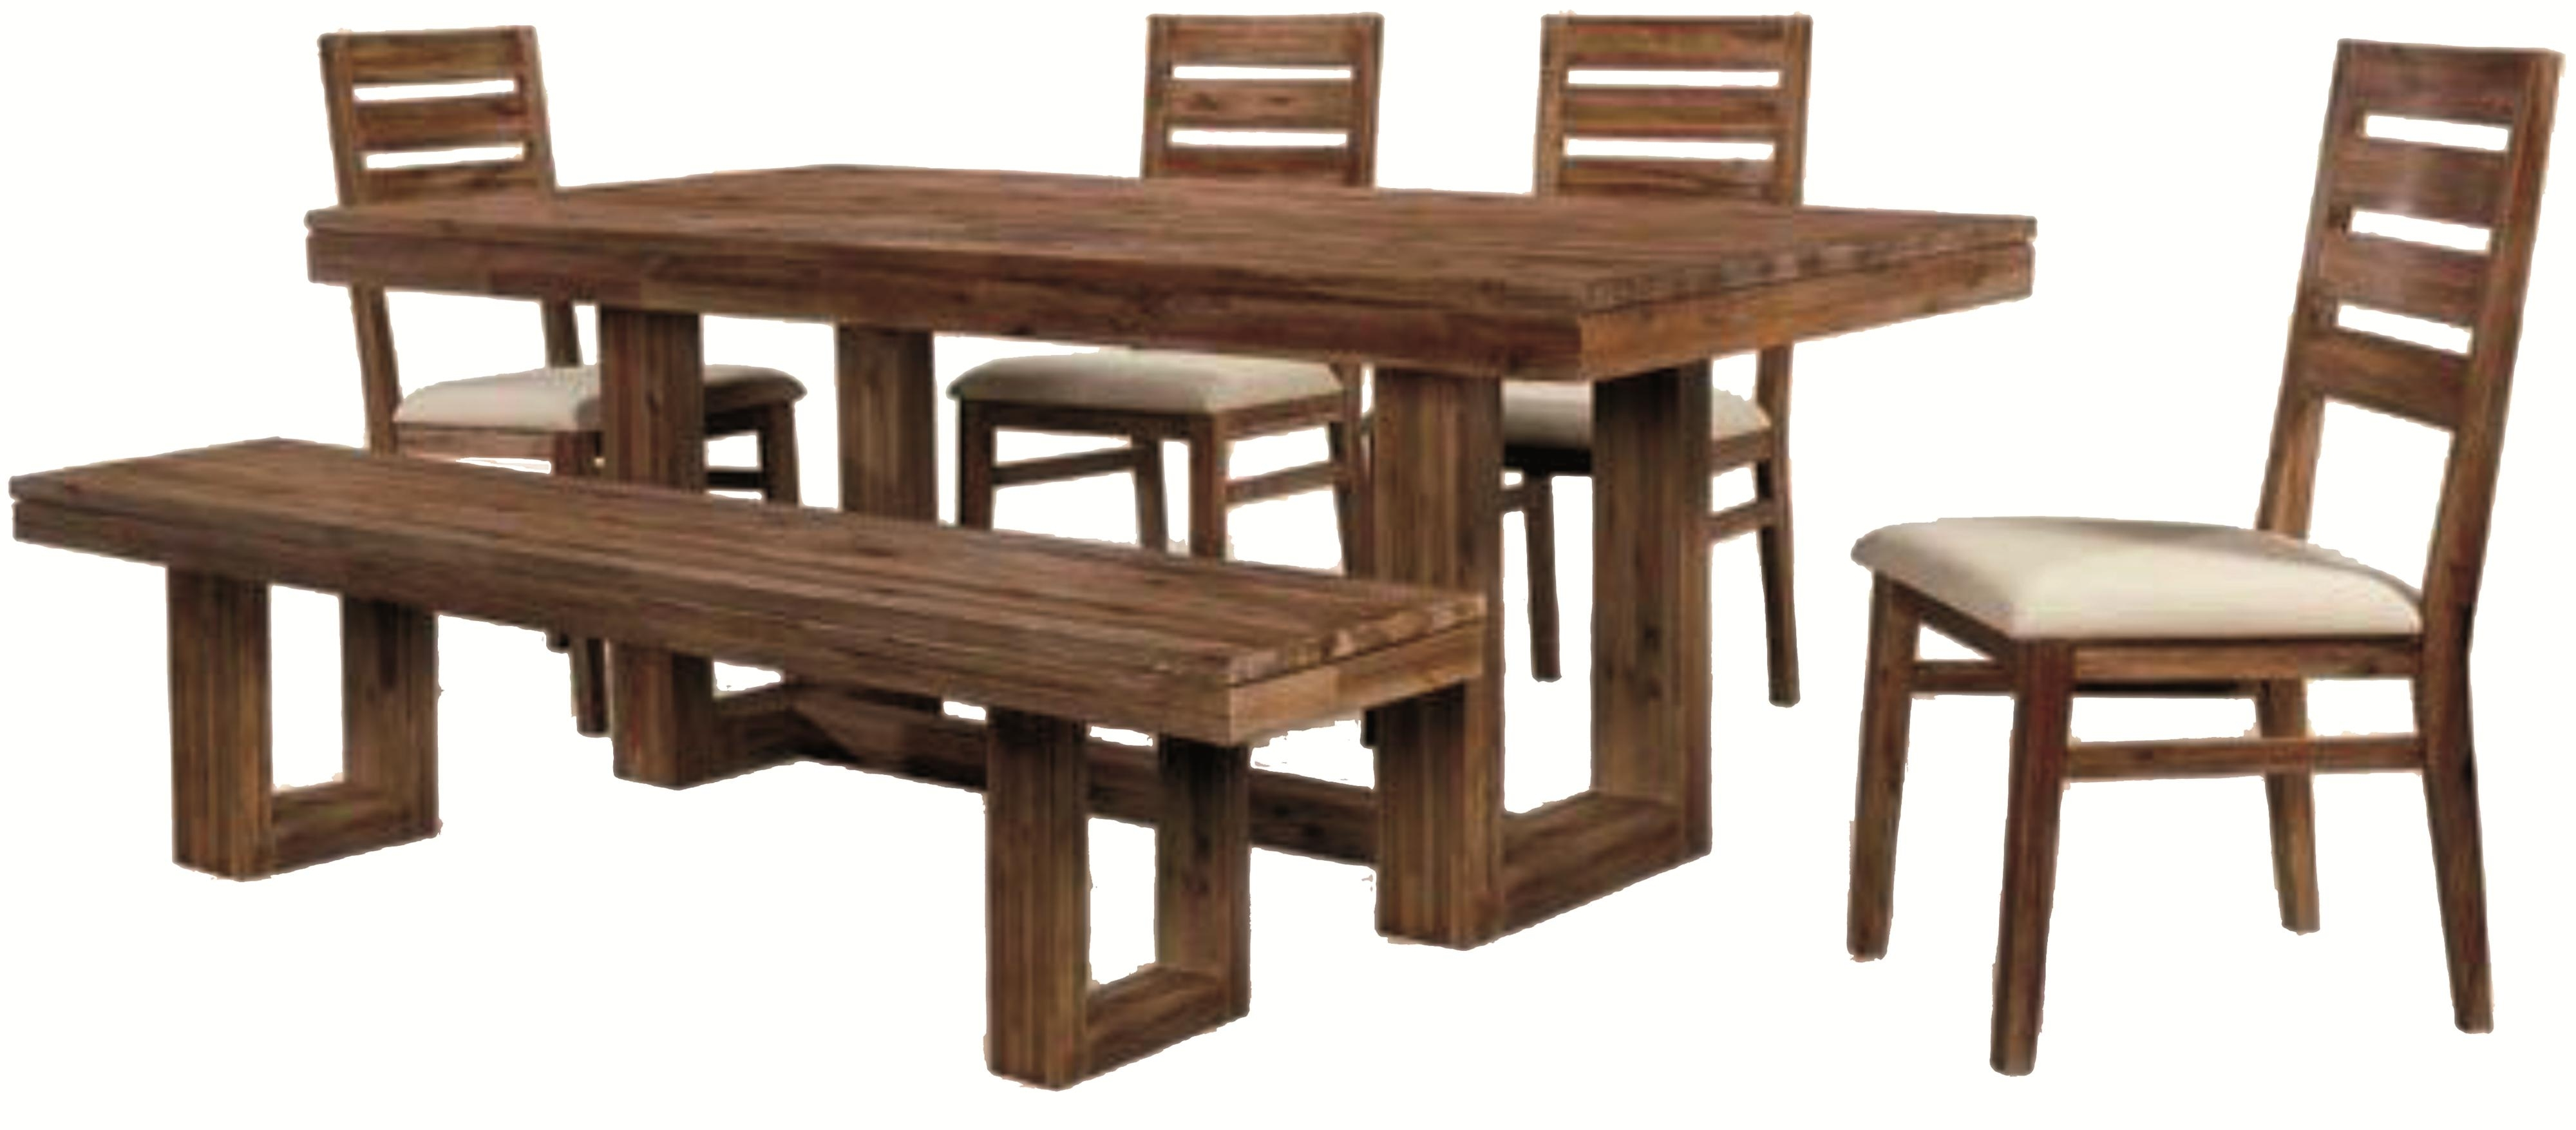 Parquet 6 Piece Dining Sets Intended For Current Six Piece Modern Rustic Rectangular Trestle Table With Ladderback (Gallery 9 of 25)